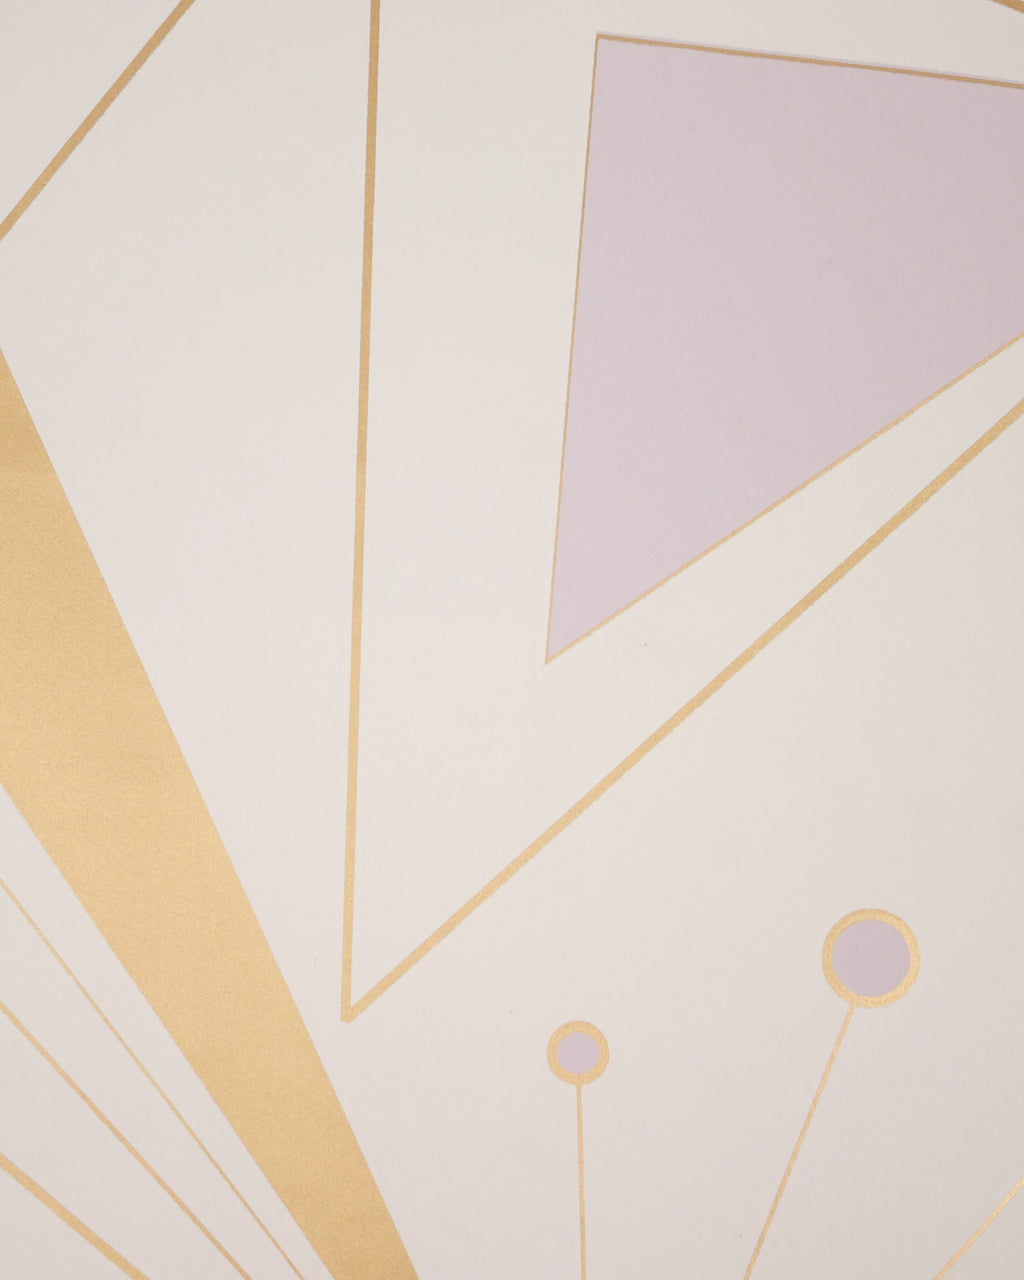 DecoPrism Wallpaper in Metallic Bronze and Lavender Mist